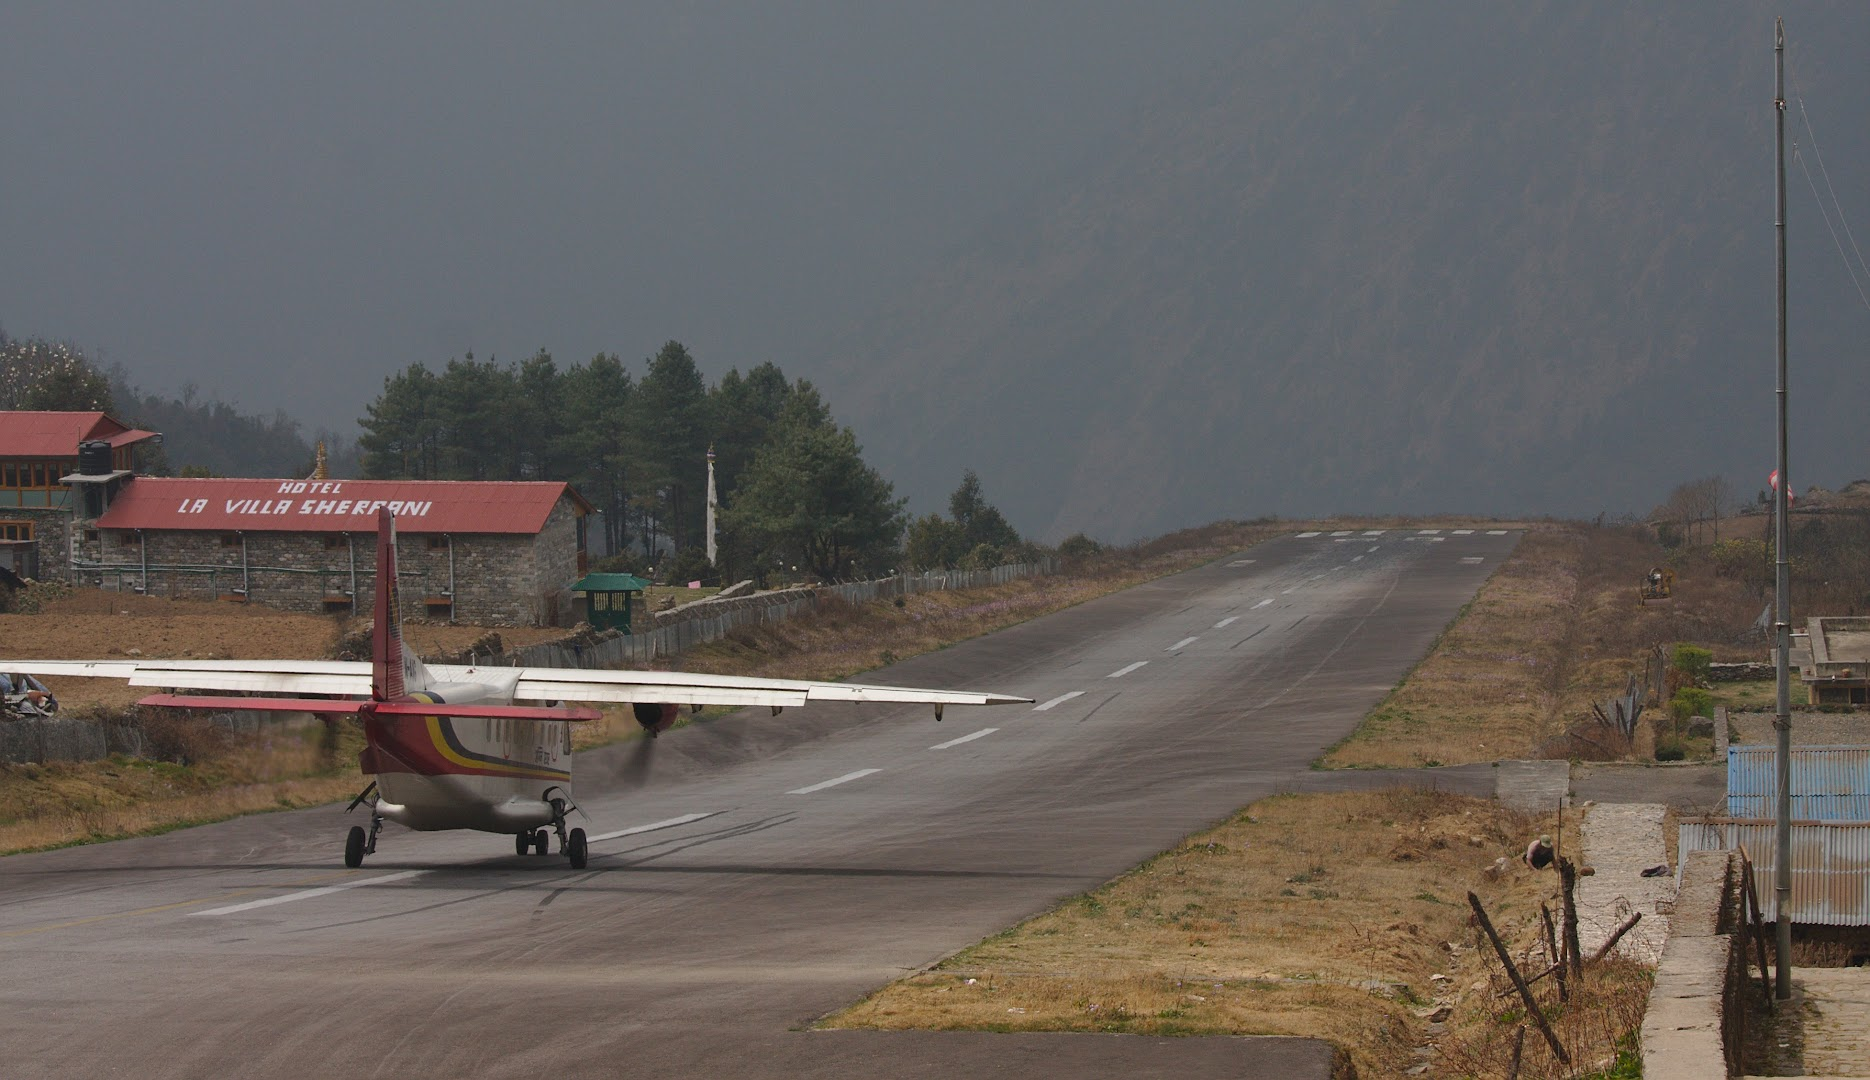 Lukla airfield has quite big incline, planes land going up and lift going down